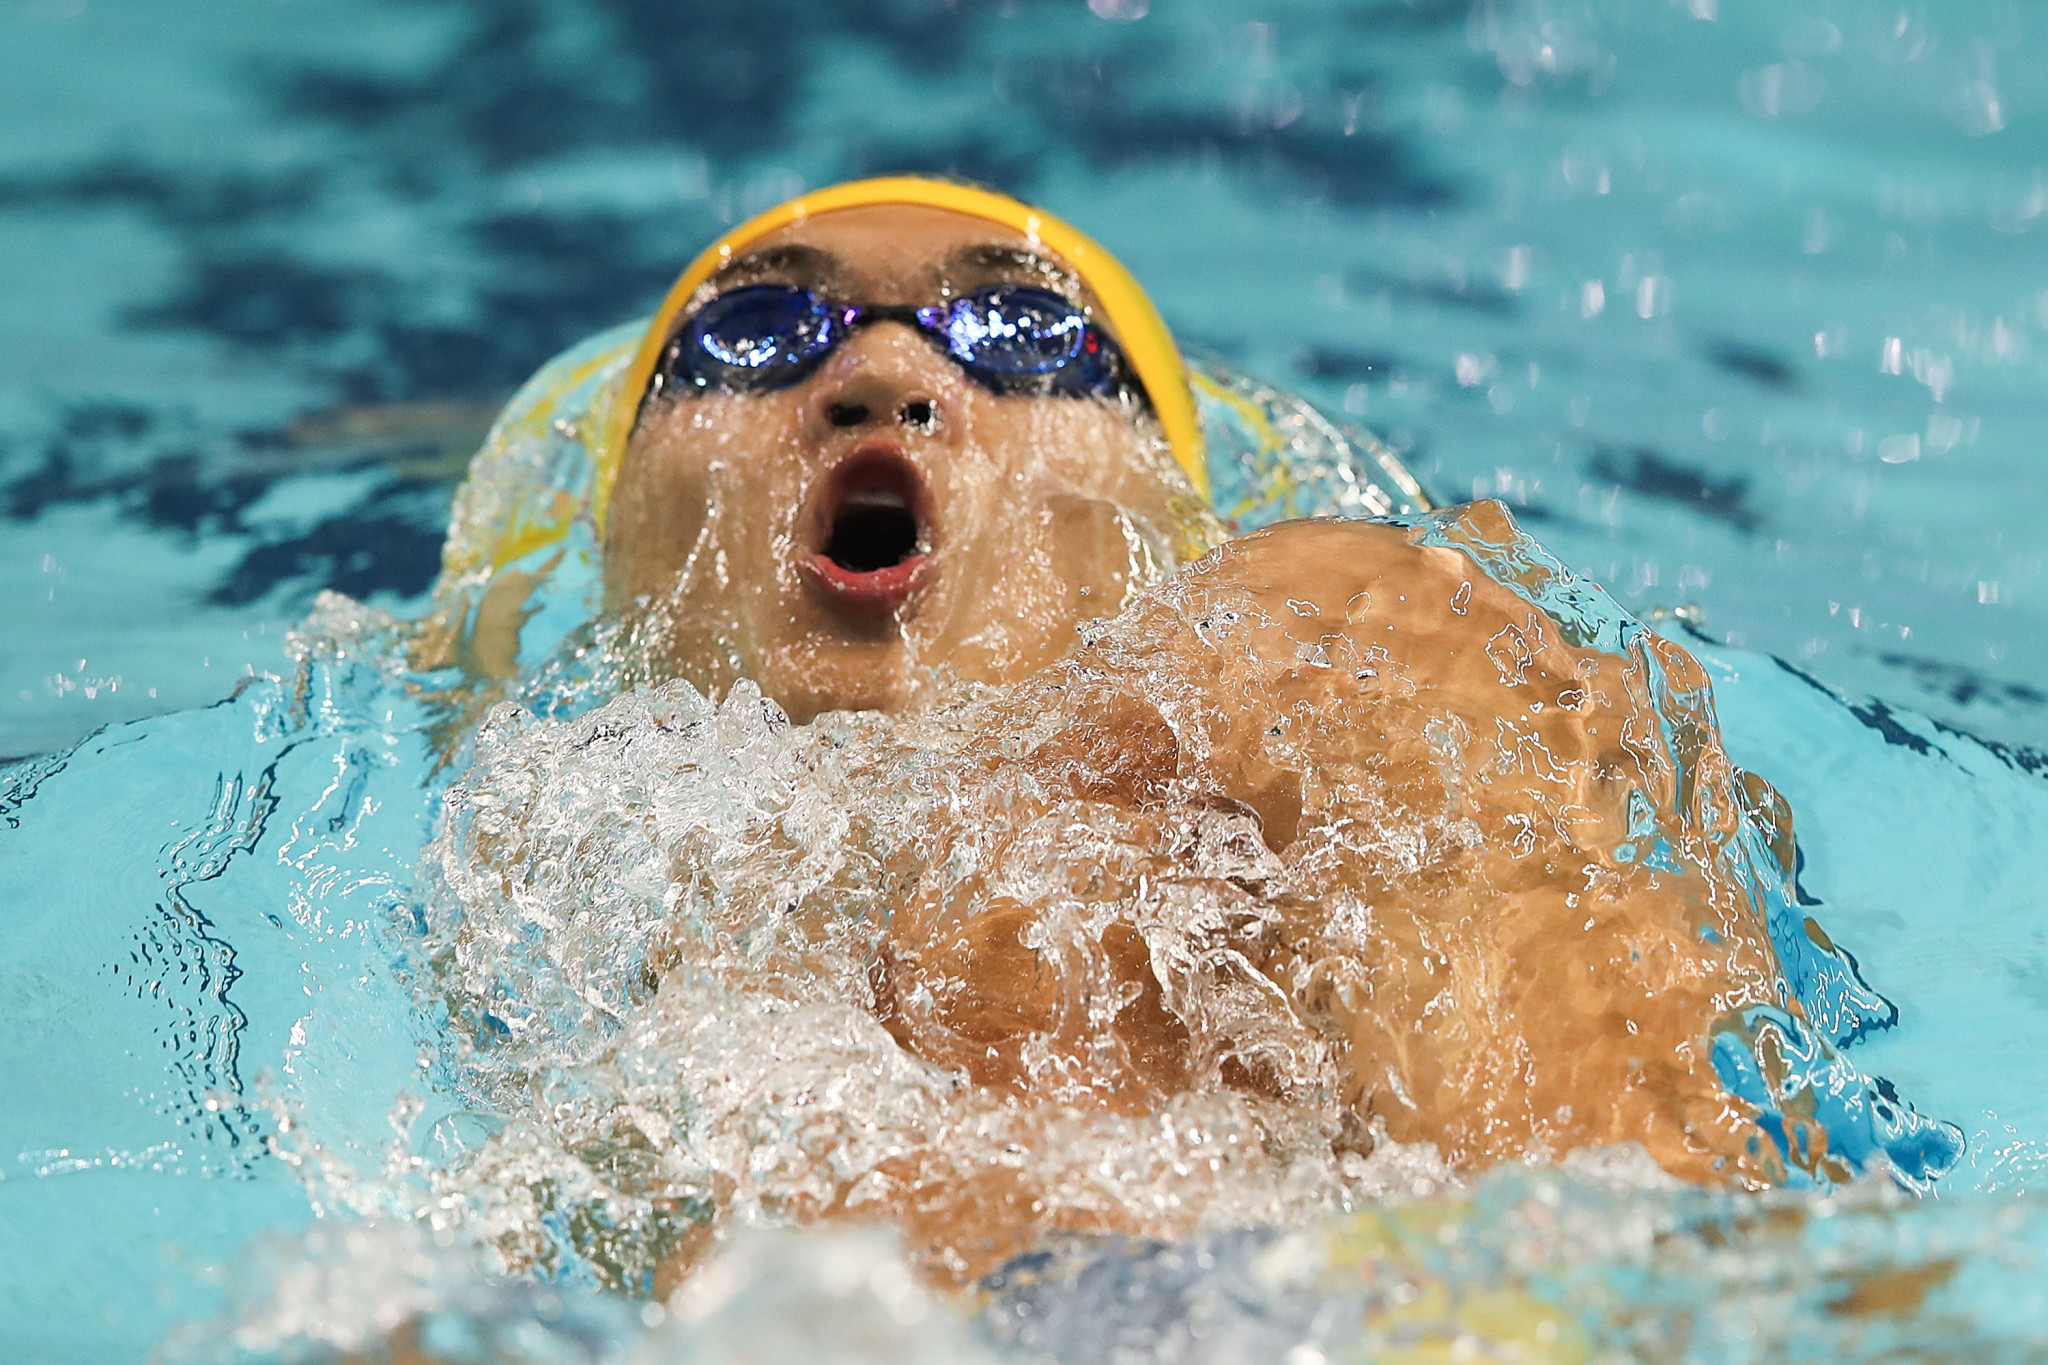 World champion Xu Jiayu is set to lead the Chinese charge in Beijing ©Getty Images